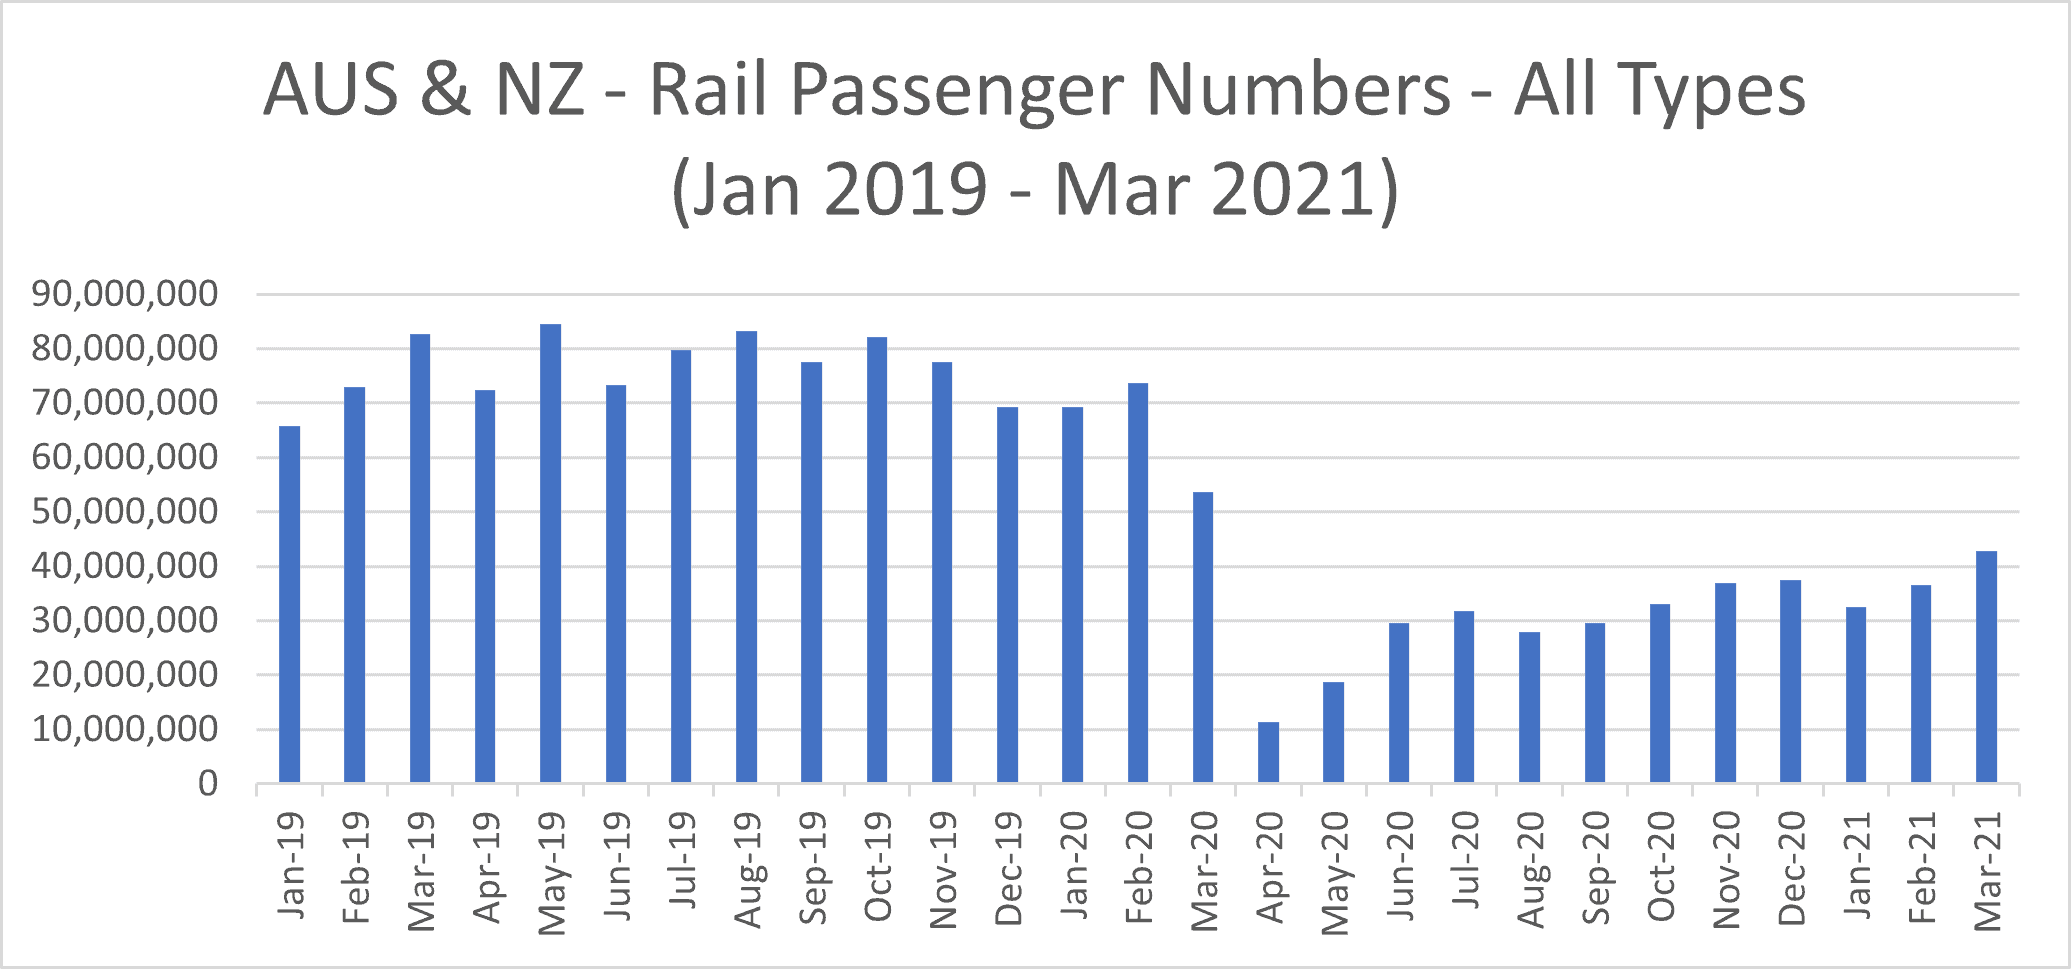 Australia and NZ rail passenger numbers [all types]